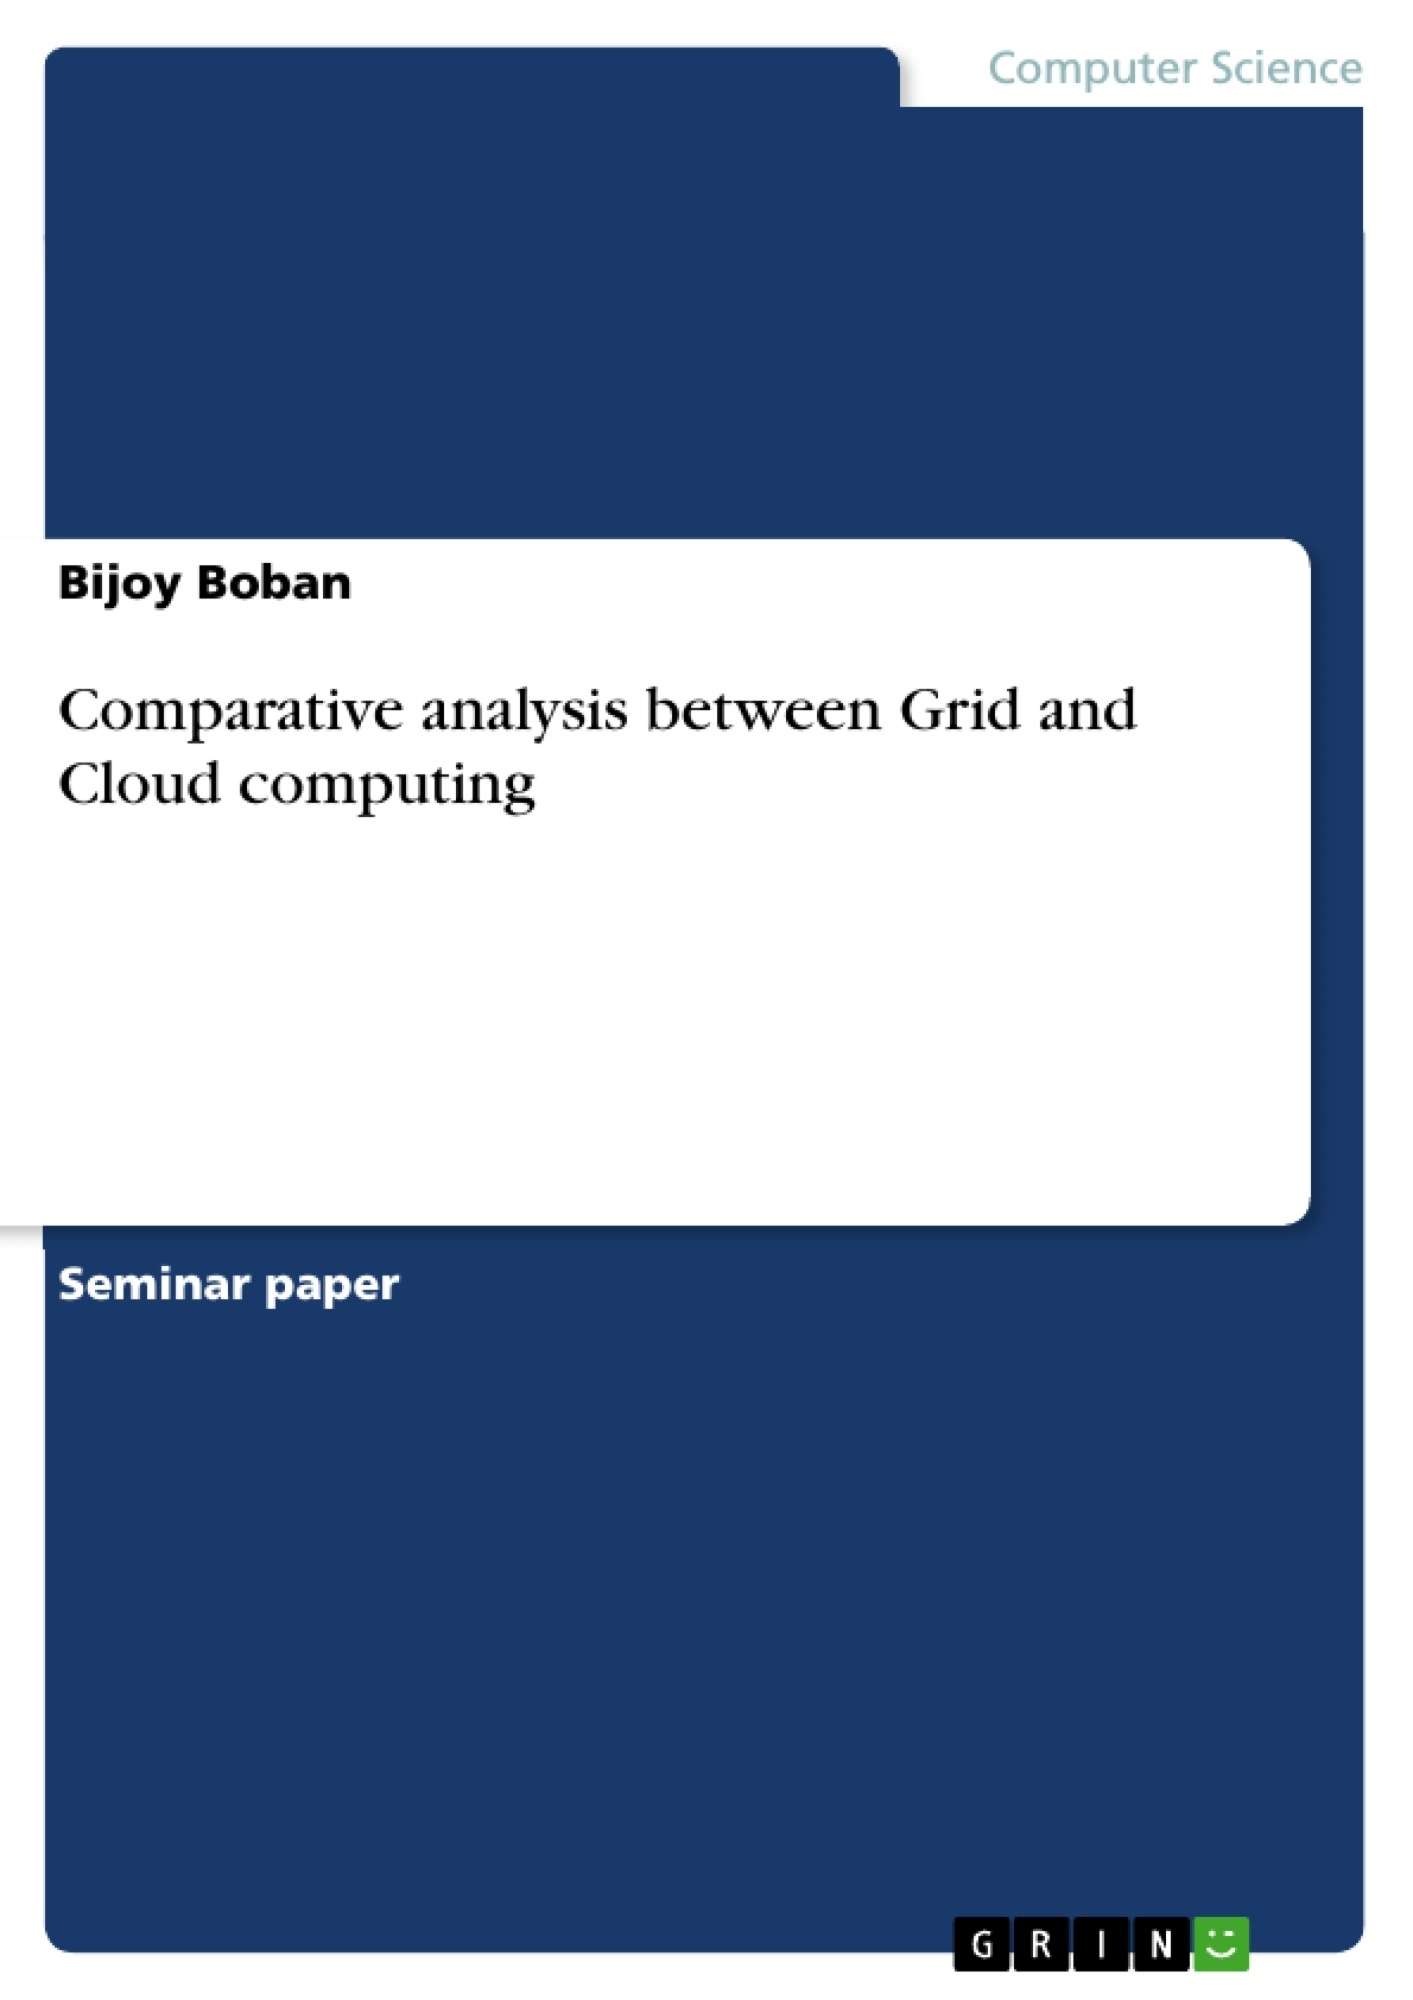 Title: Comparative analysis between Grid and Cloud computing